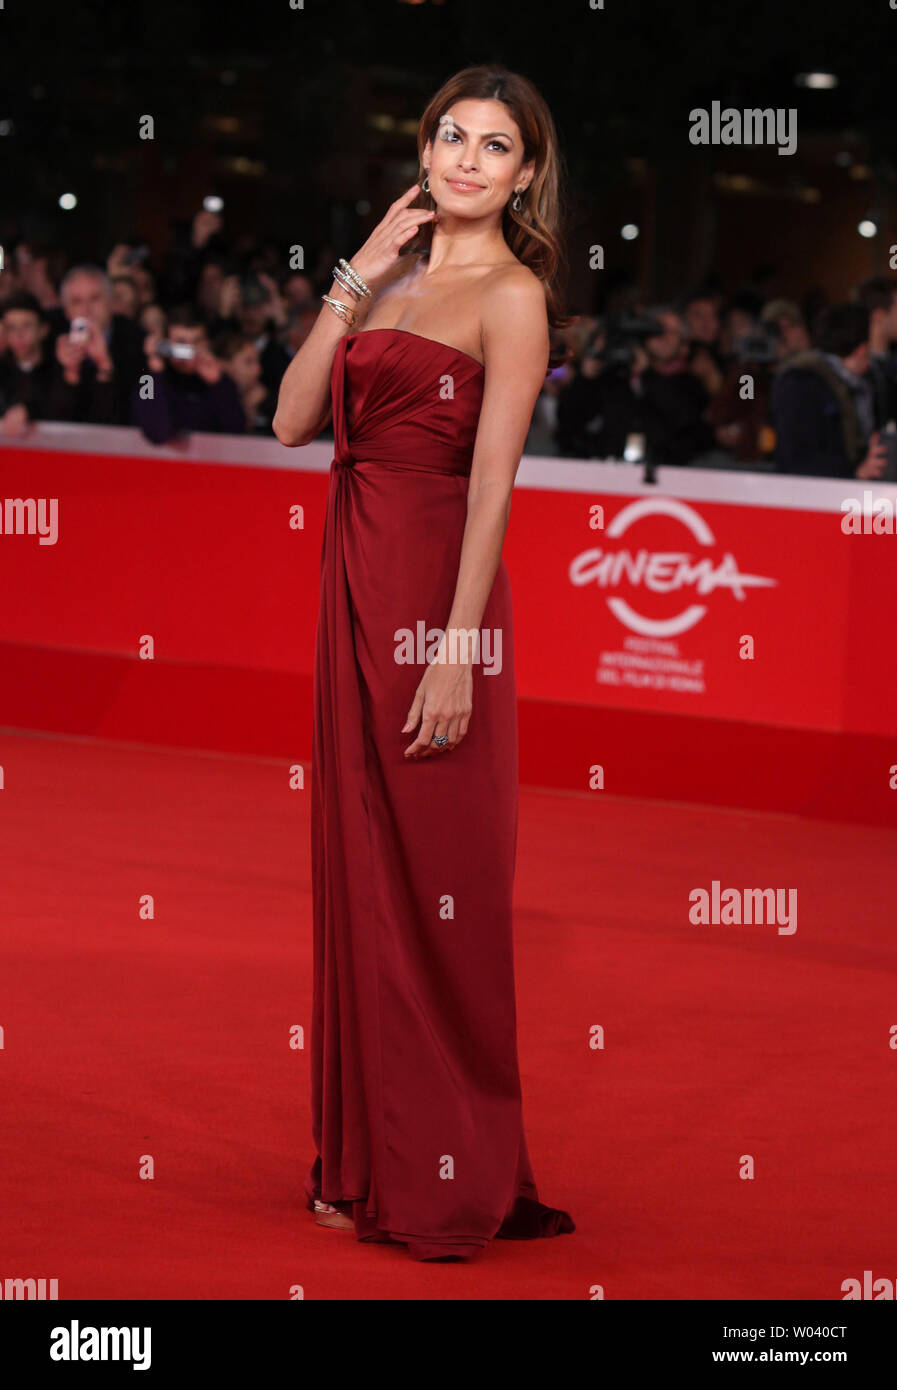 Eva Mendes arrives on the red carpet before the screening of a digitally restored version of the 1960 classic film 'La Dolce Vita' during the 5th Rome International Film Festival in Rome on October 30, 2010.   UPI/David Silpa - Stock Image